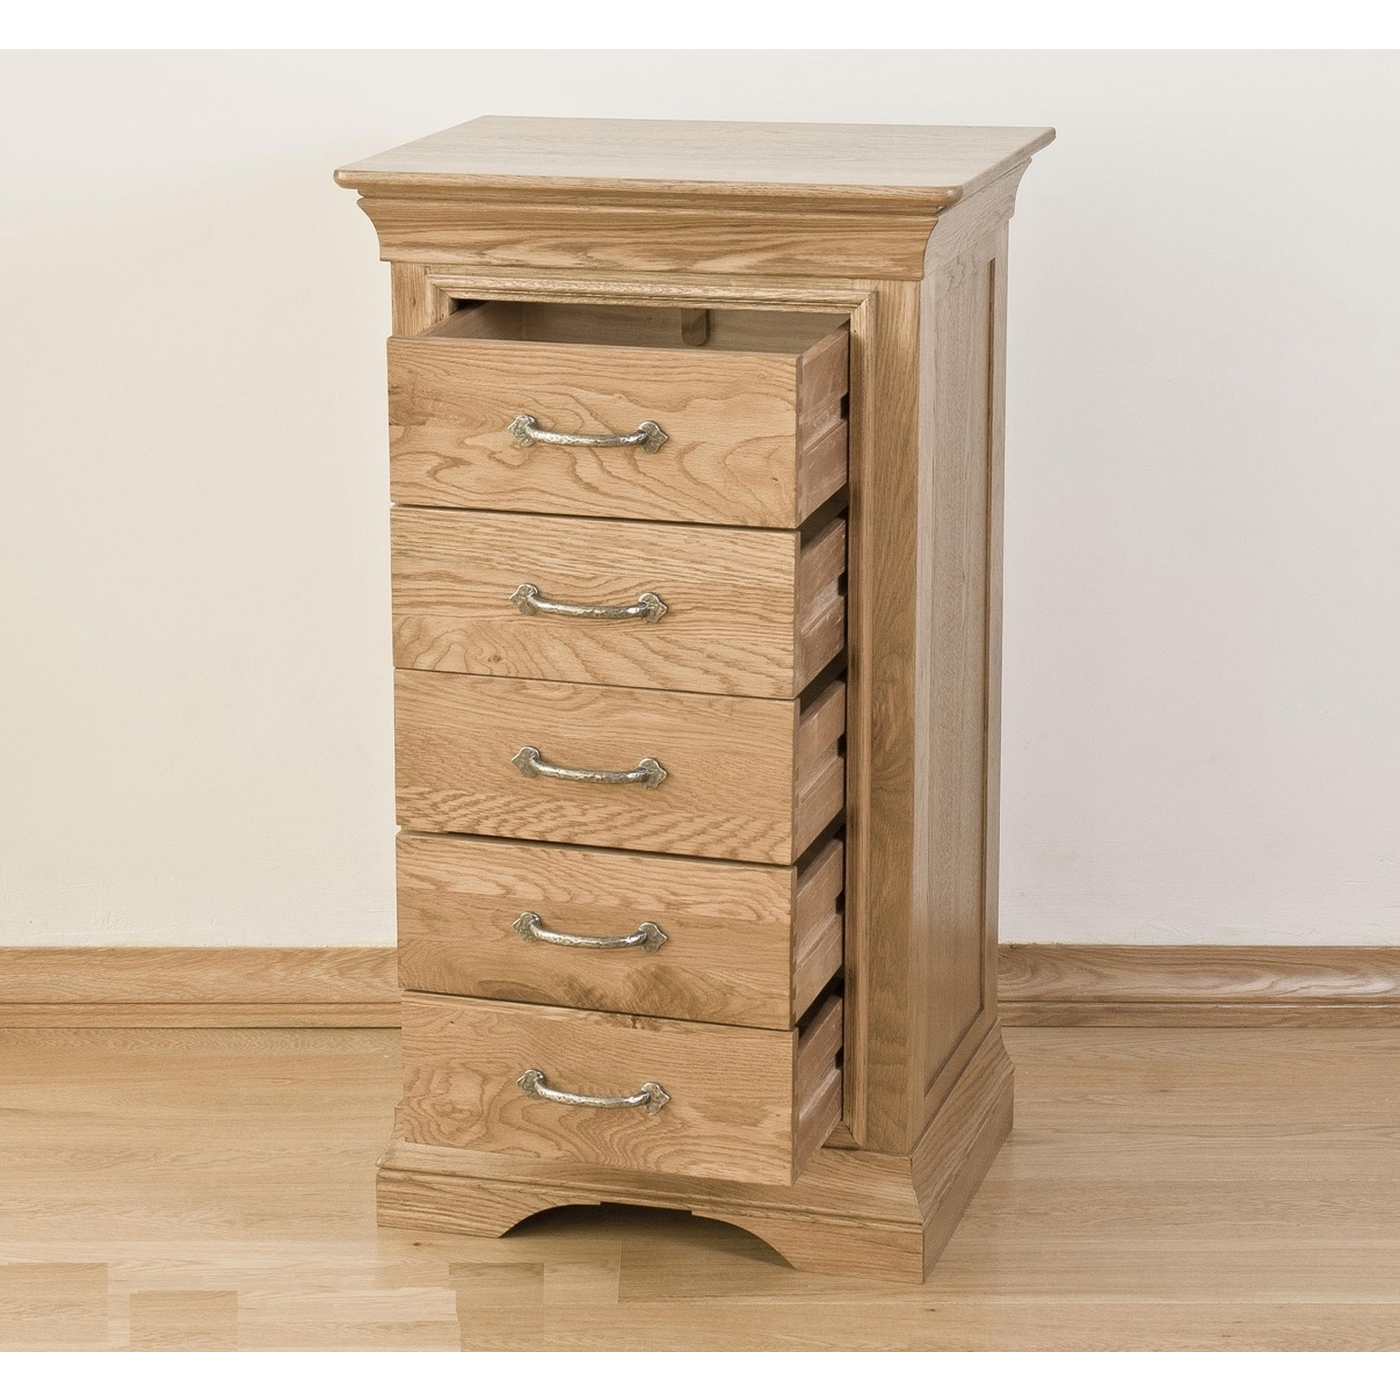 Toulon solid oak furniture bedroom tallboy wellington for Furniture wellington